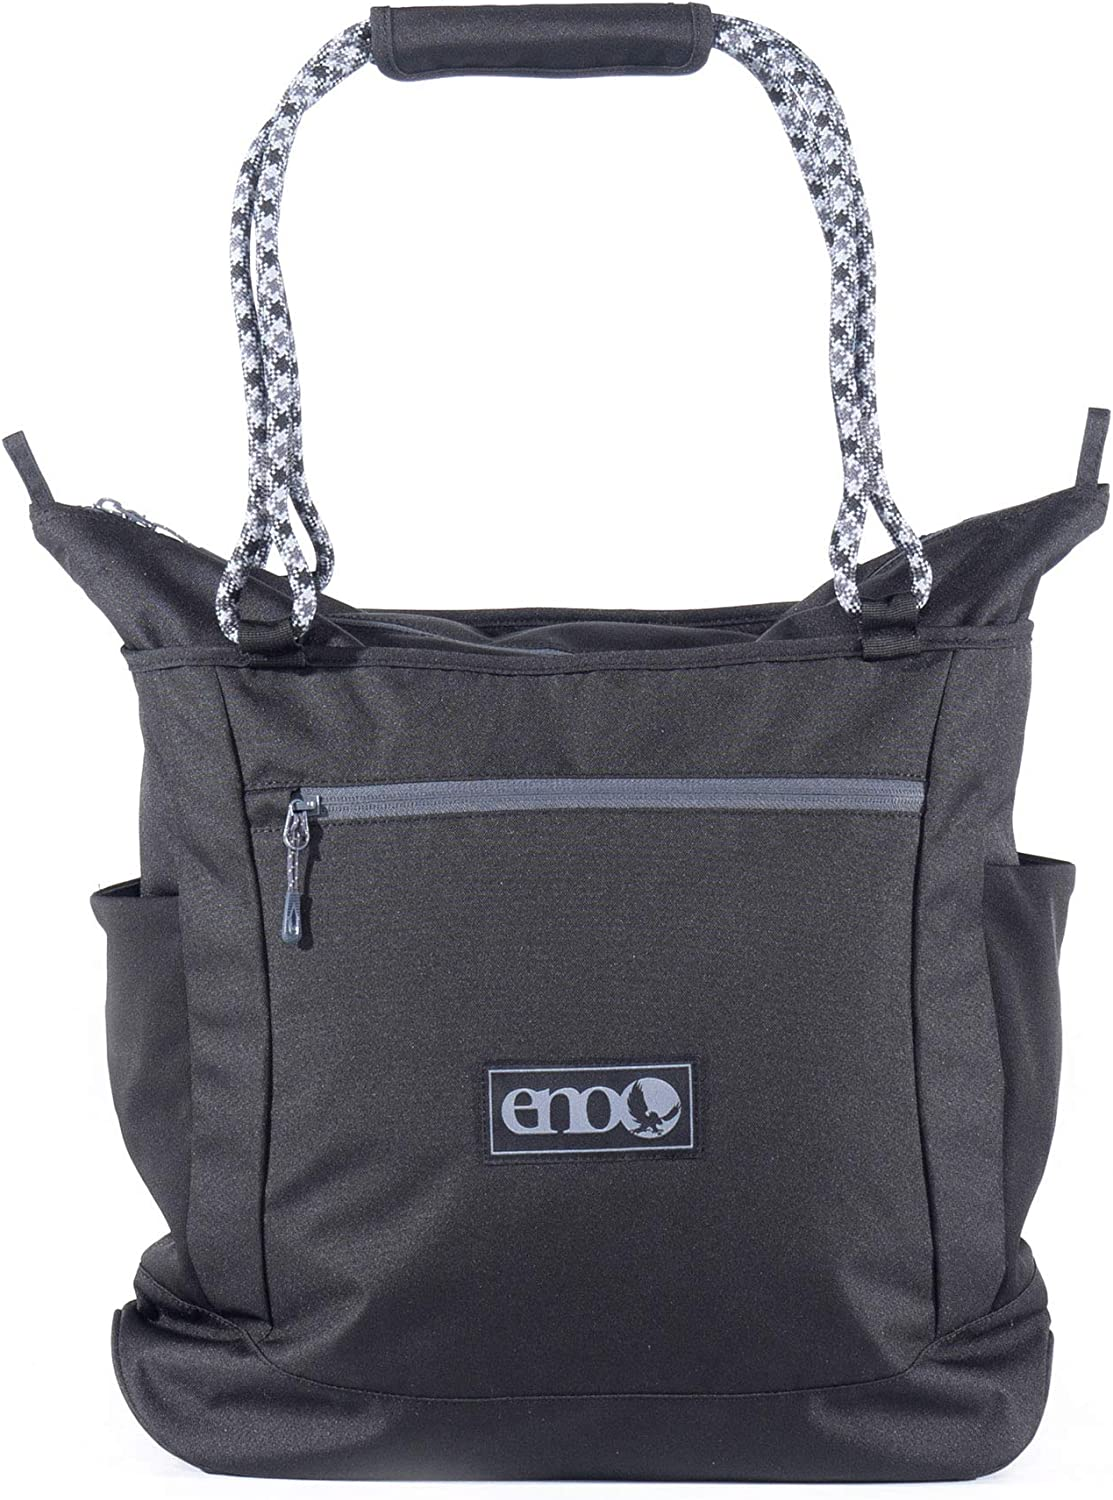 ENO Eagles 25% OFF Nest Outfitters 2021 model Relay Tote with for Handles Bag Rope